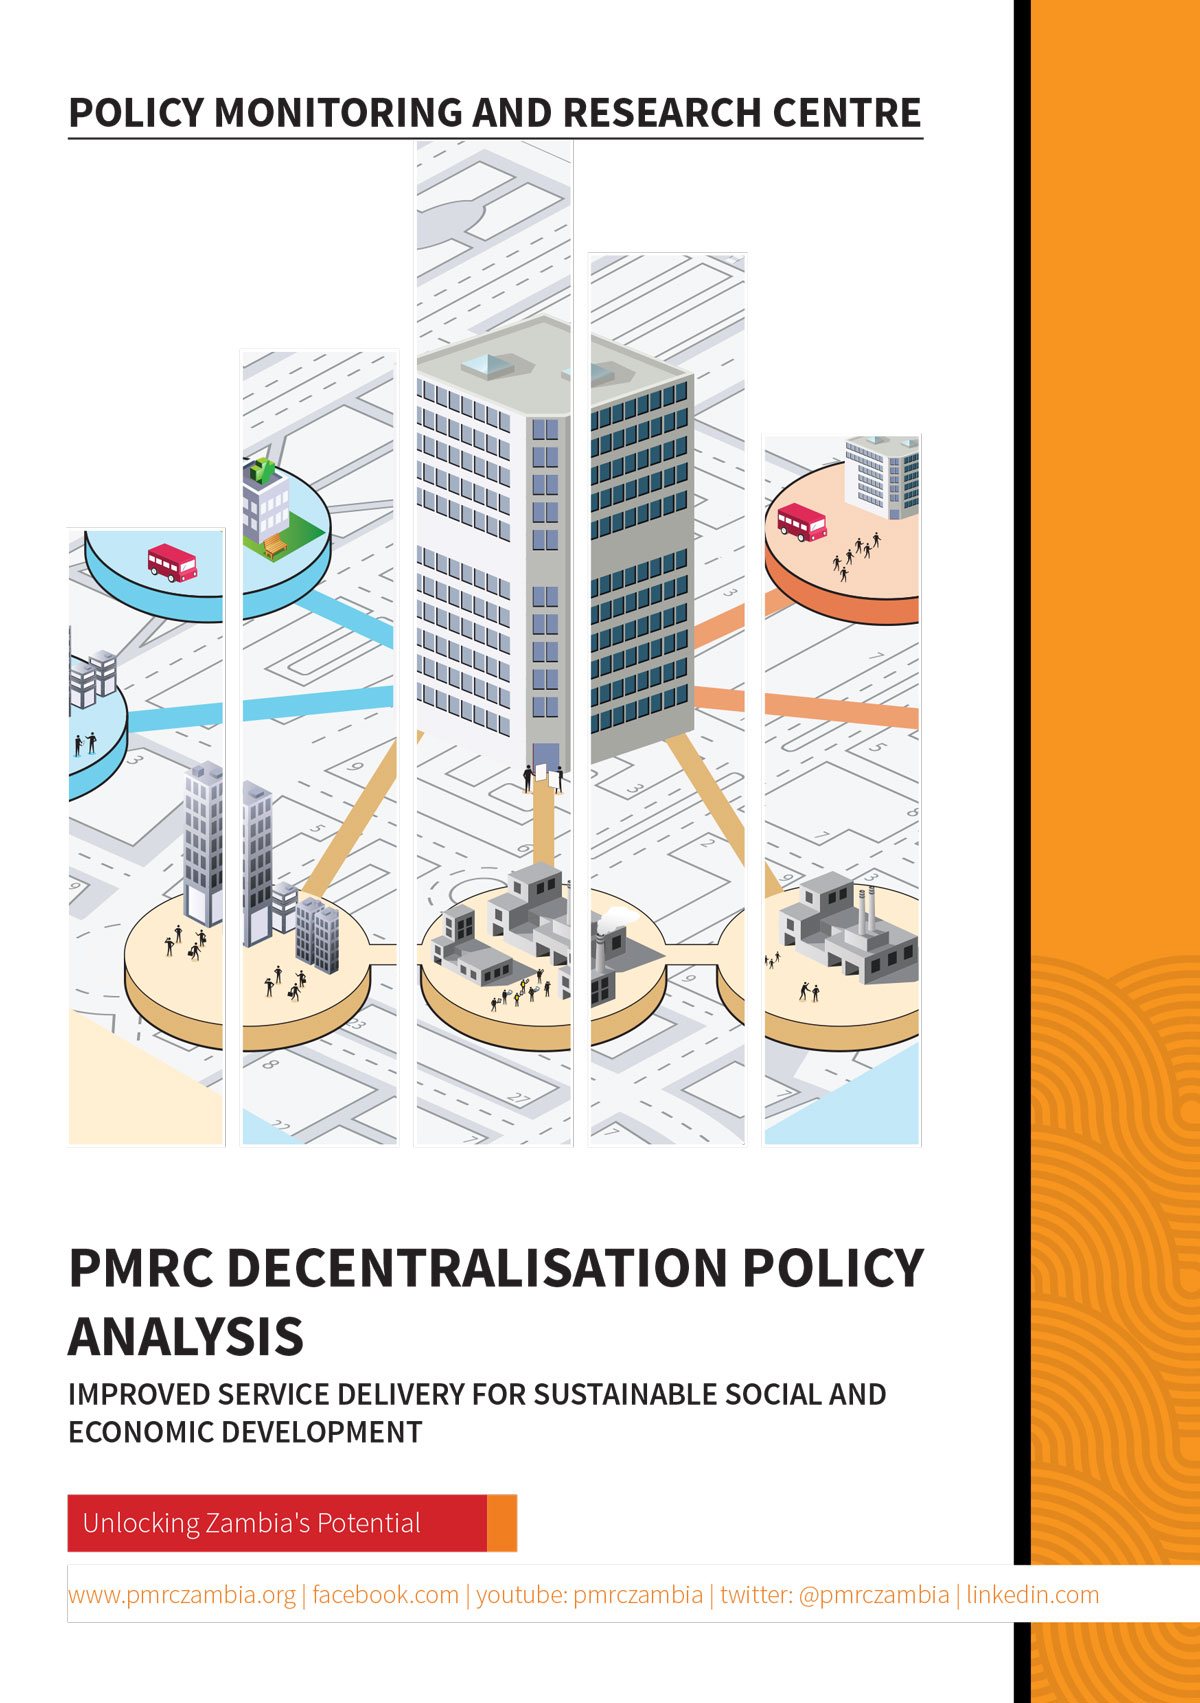 PMRC-Decentralisation-Policy-Analysis-1